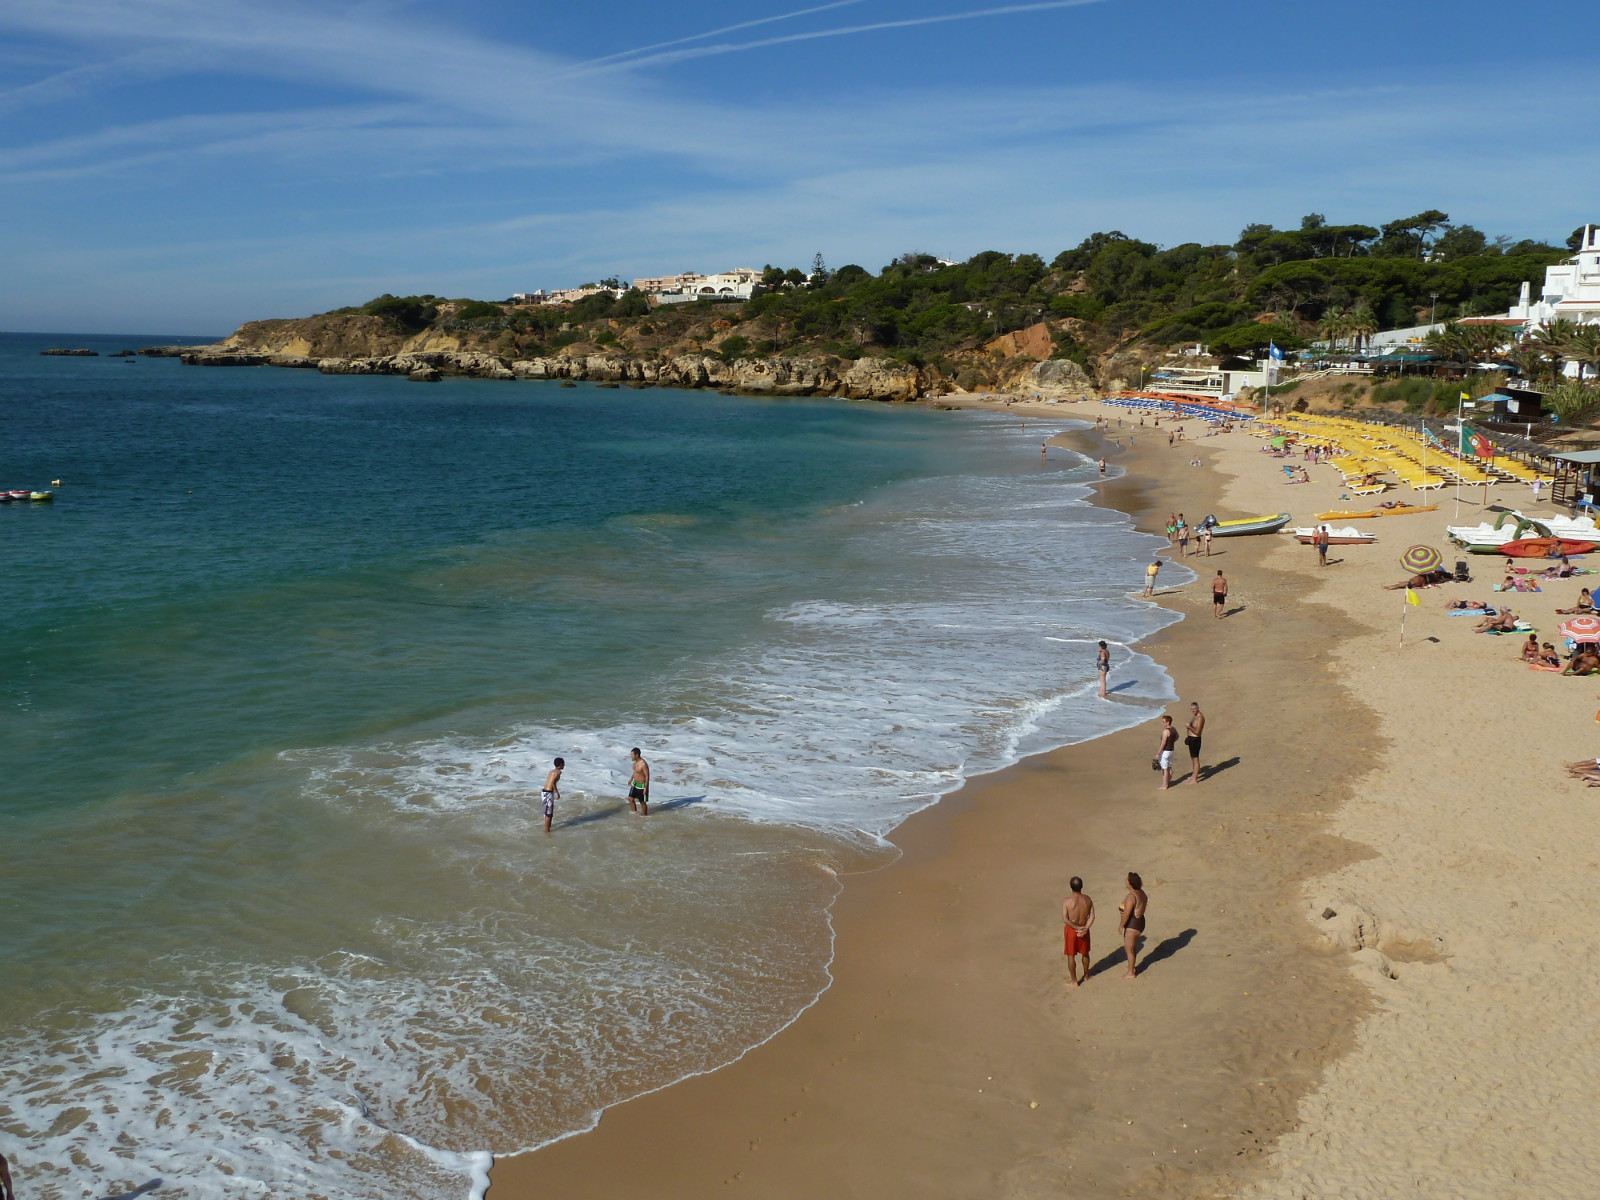 Praia da Oura: Another local, beautiful, picture postcard 'Blue Flag Beach'.